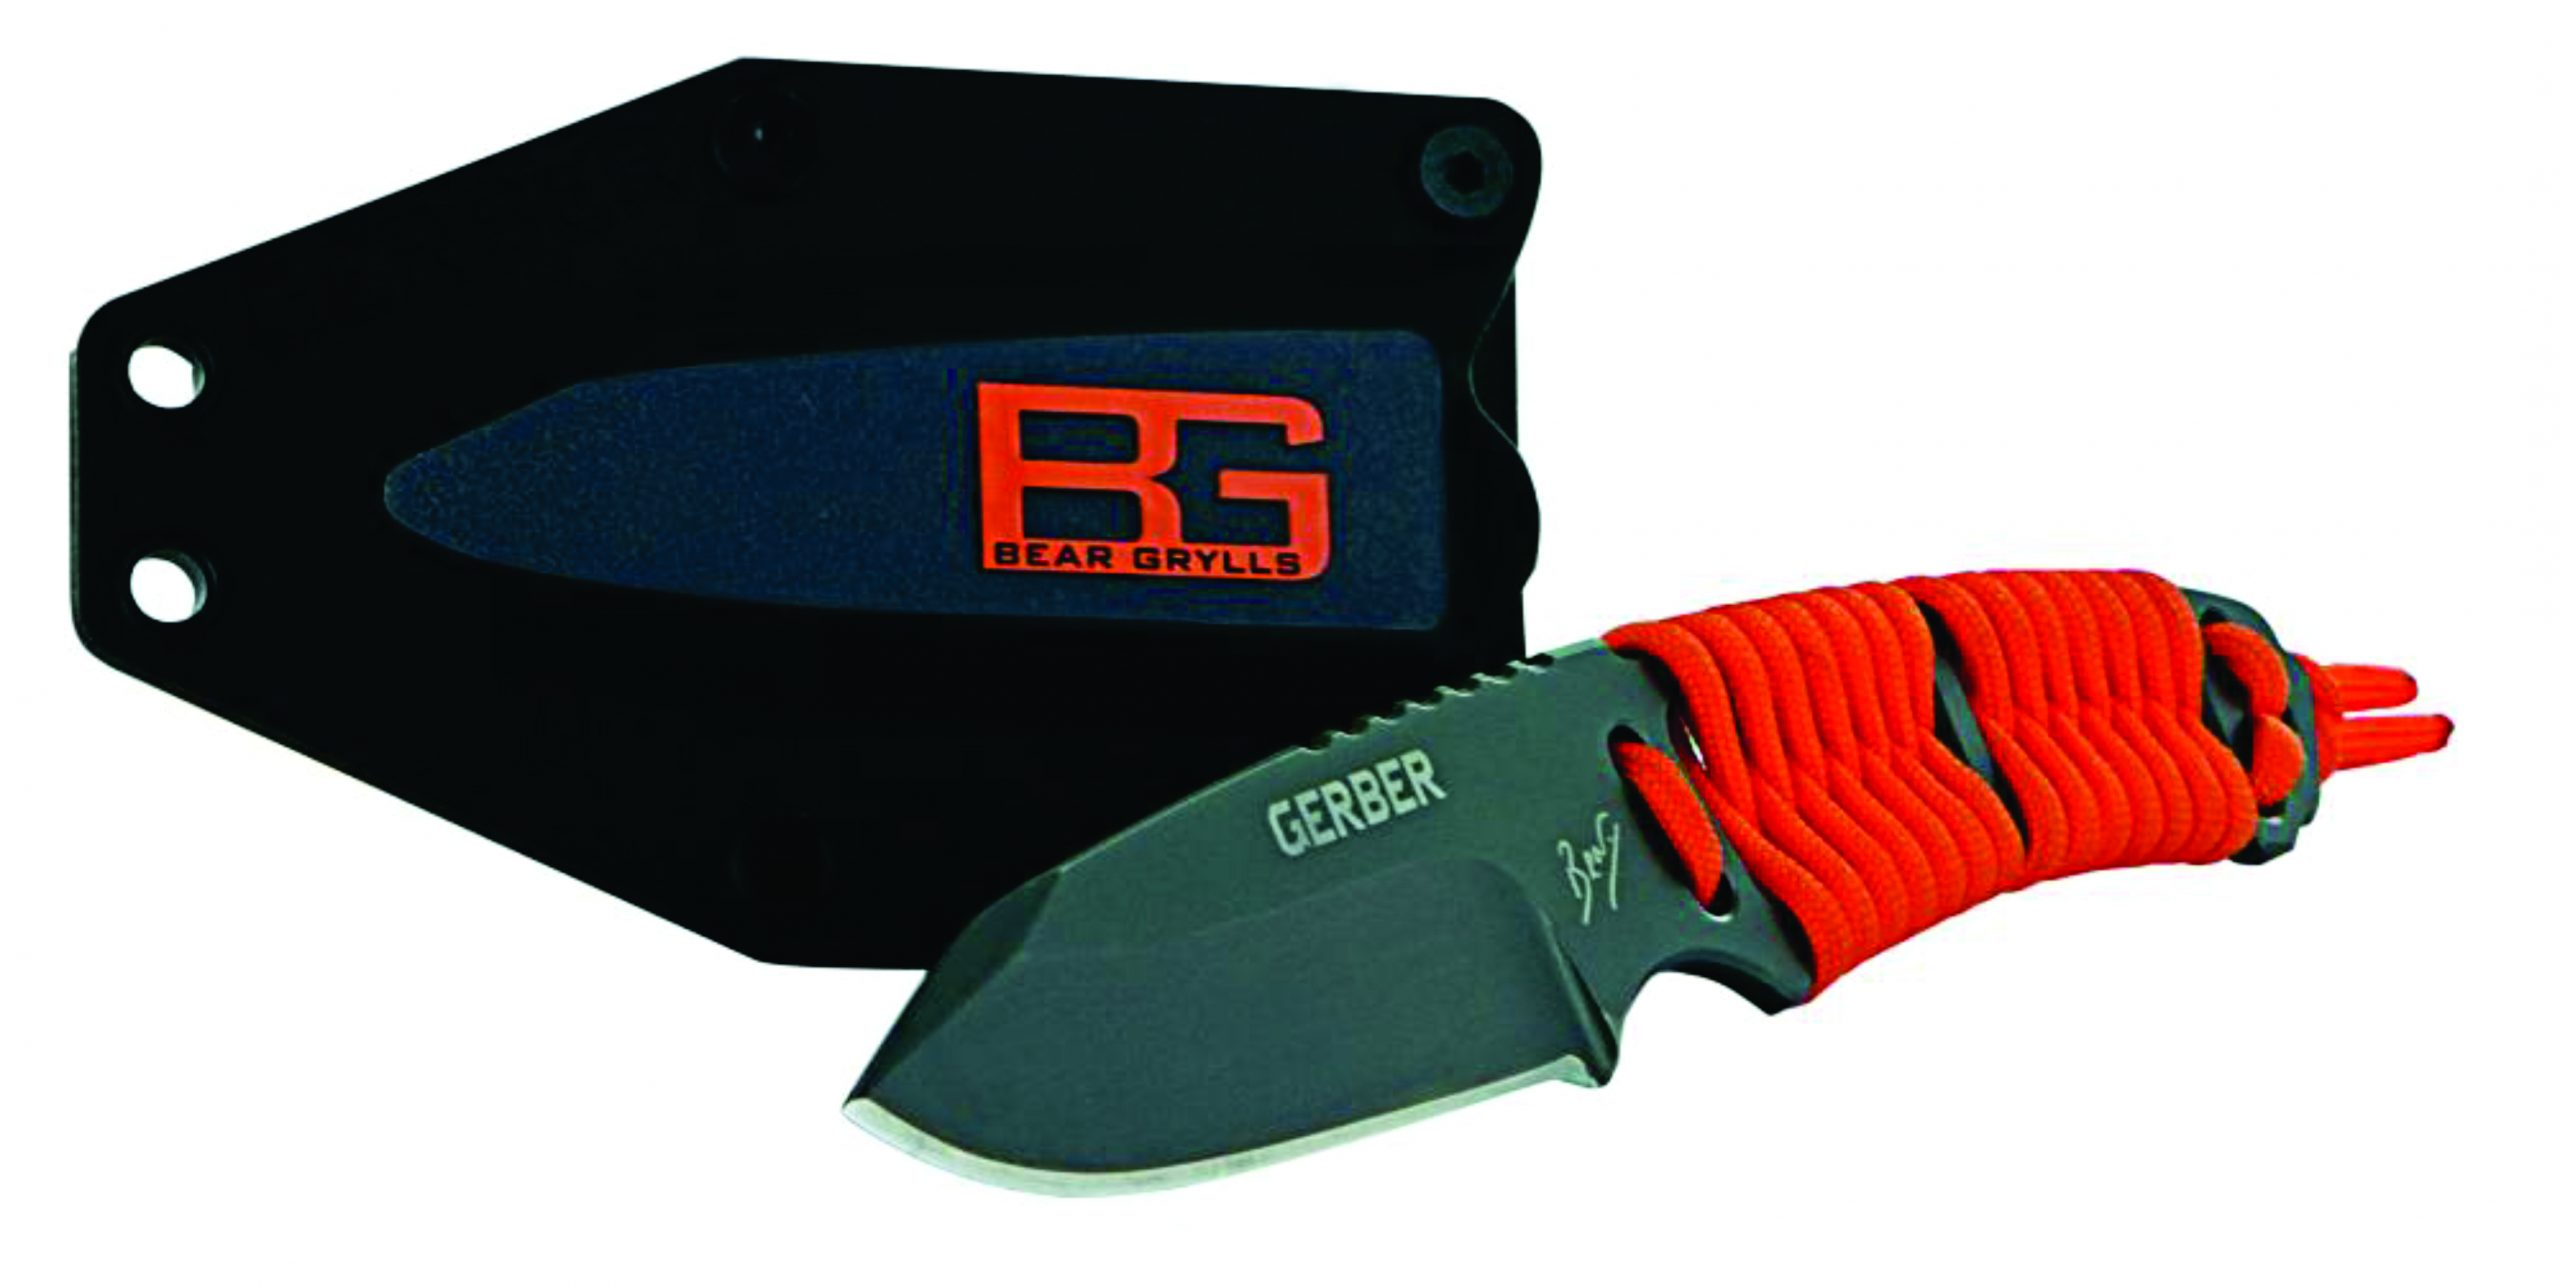 Bear Grylls Fixed blade every day carry paracord knife with kydex type sheath